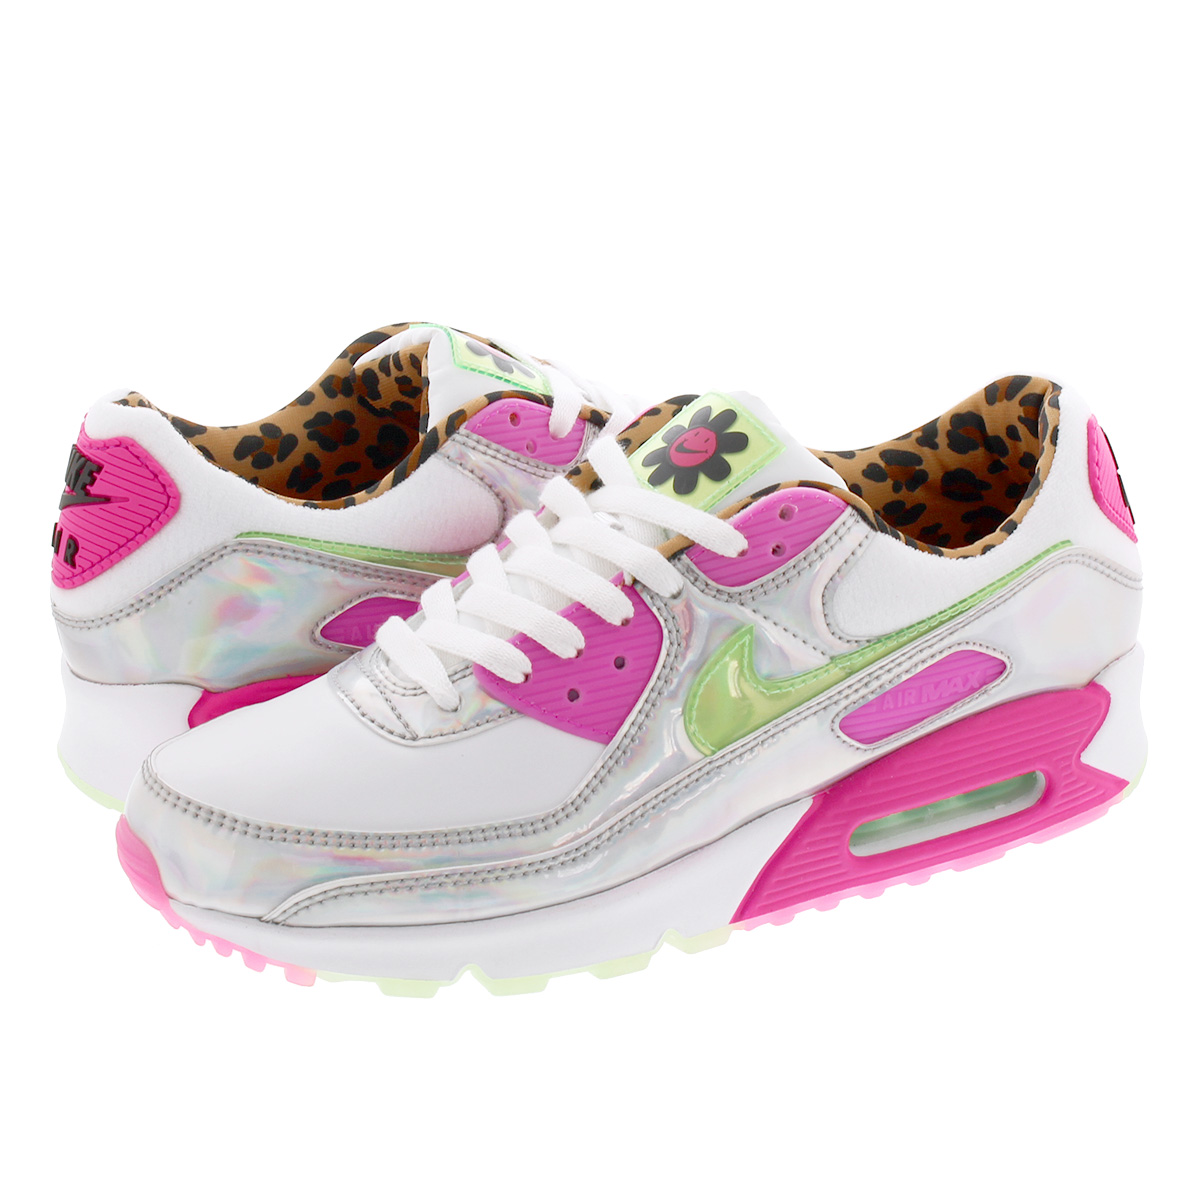 nike women's wmns air max 90 running shoes